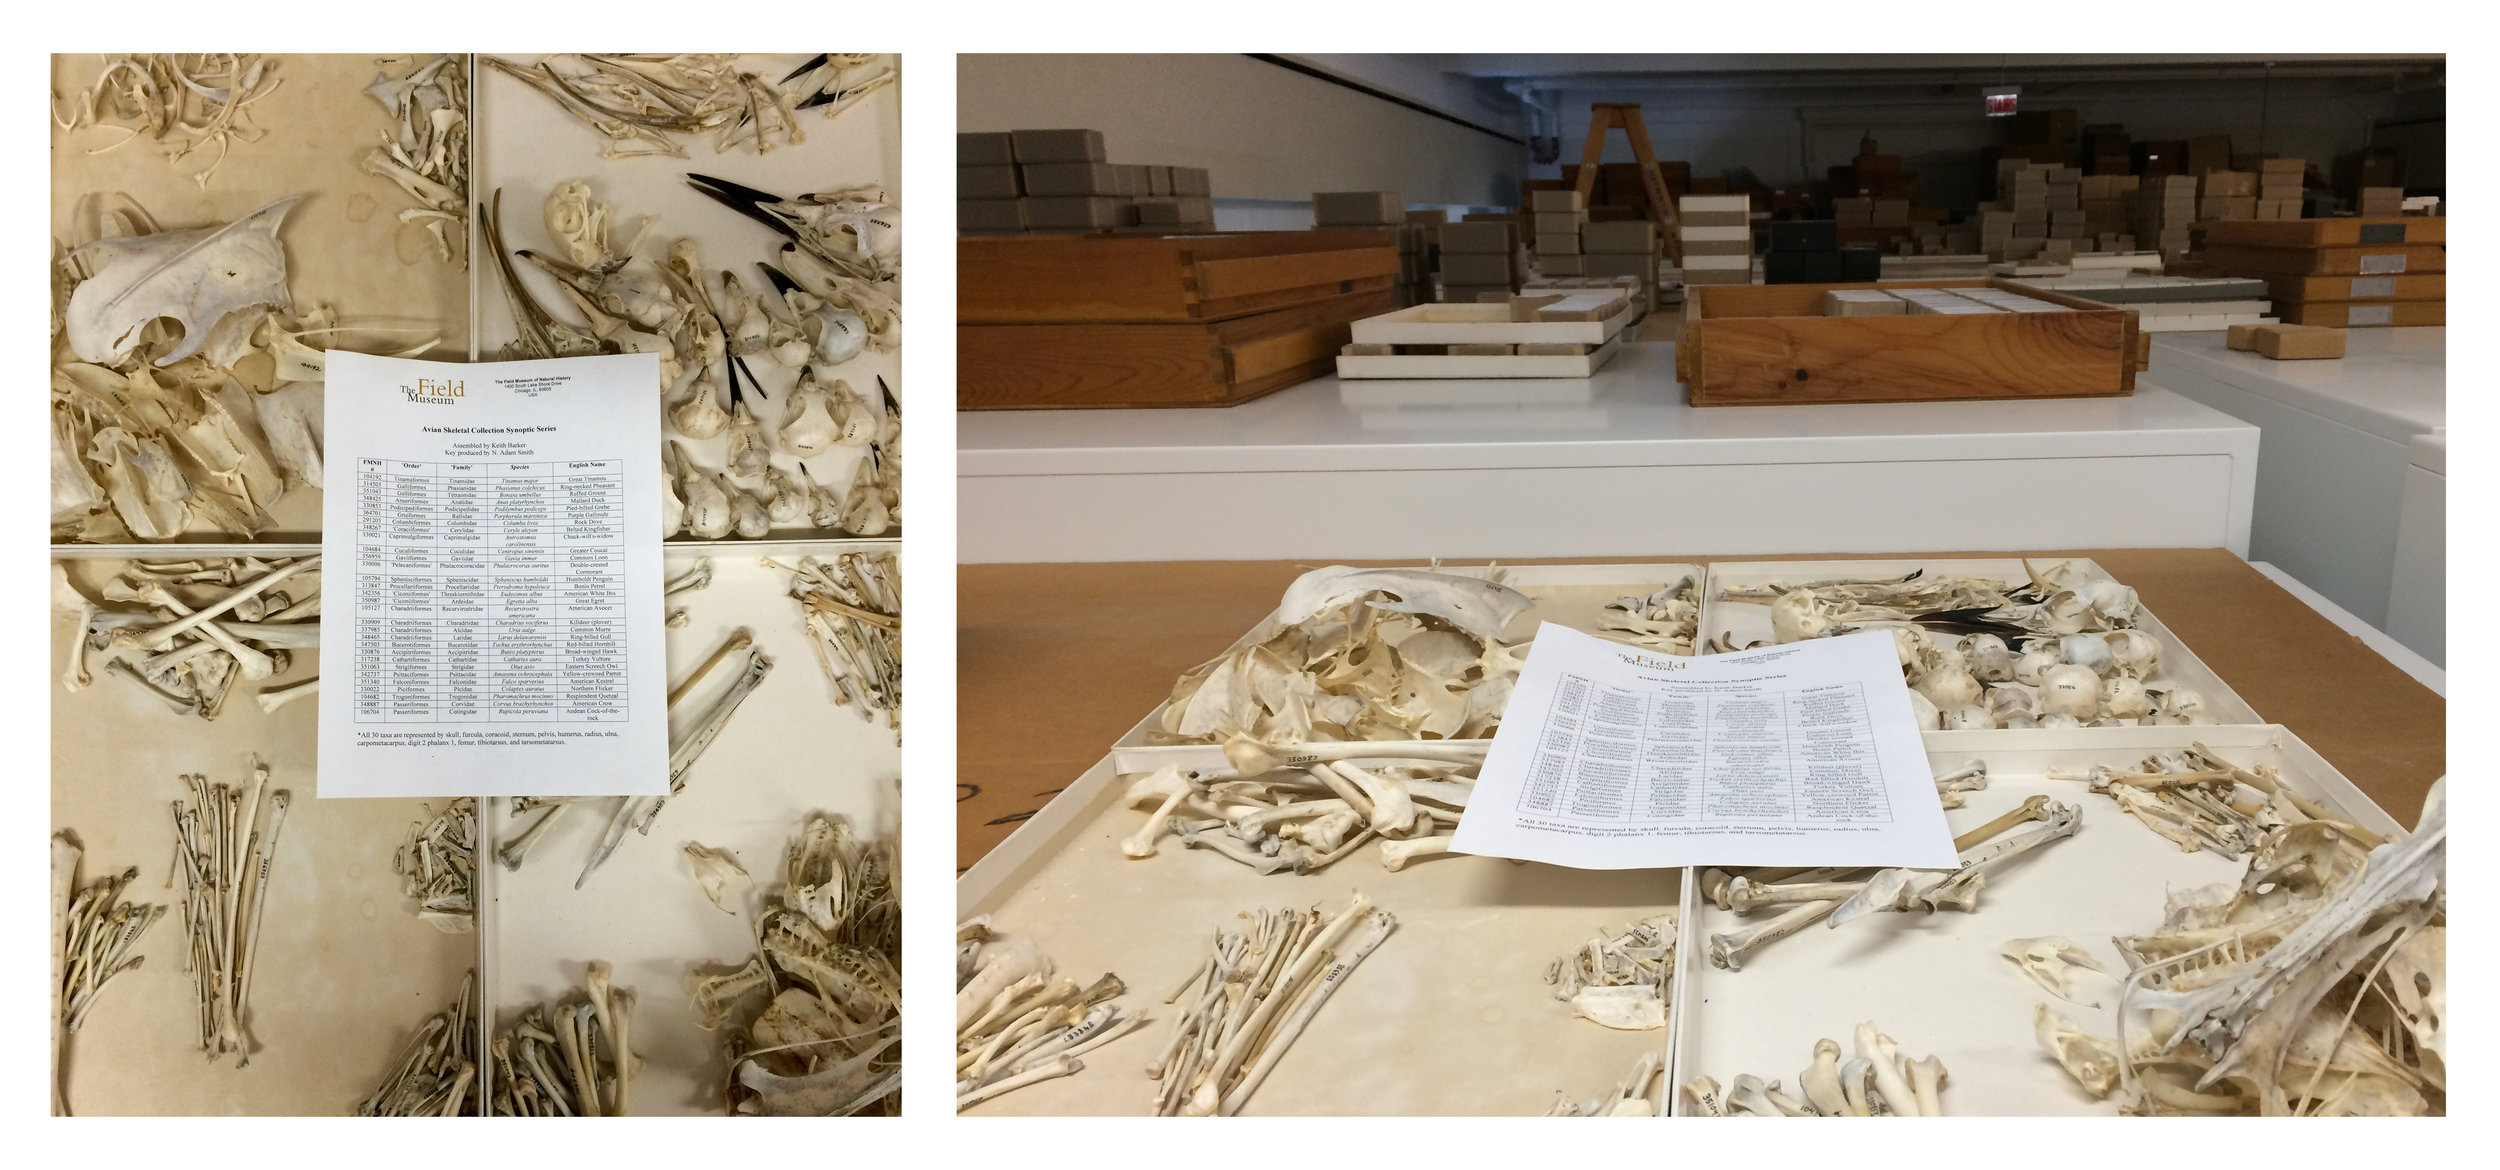 """On the left, a close-up of the Field Museum of Natural History's """"Avian Skeletal Collection Synoptic Series,"""" assembled by Keith Barker, with key produced by N. Adam Smith. On the right, a shot of the synoptic series  in situ . All photos in this post by the author."""